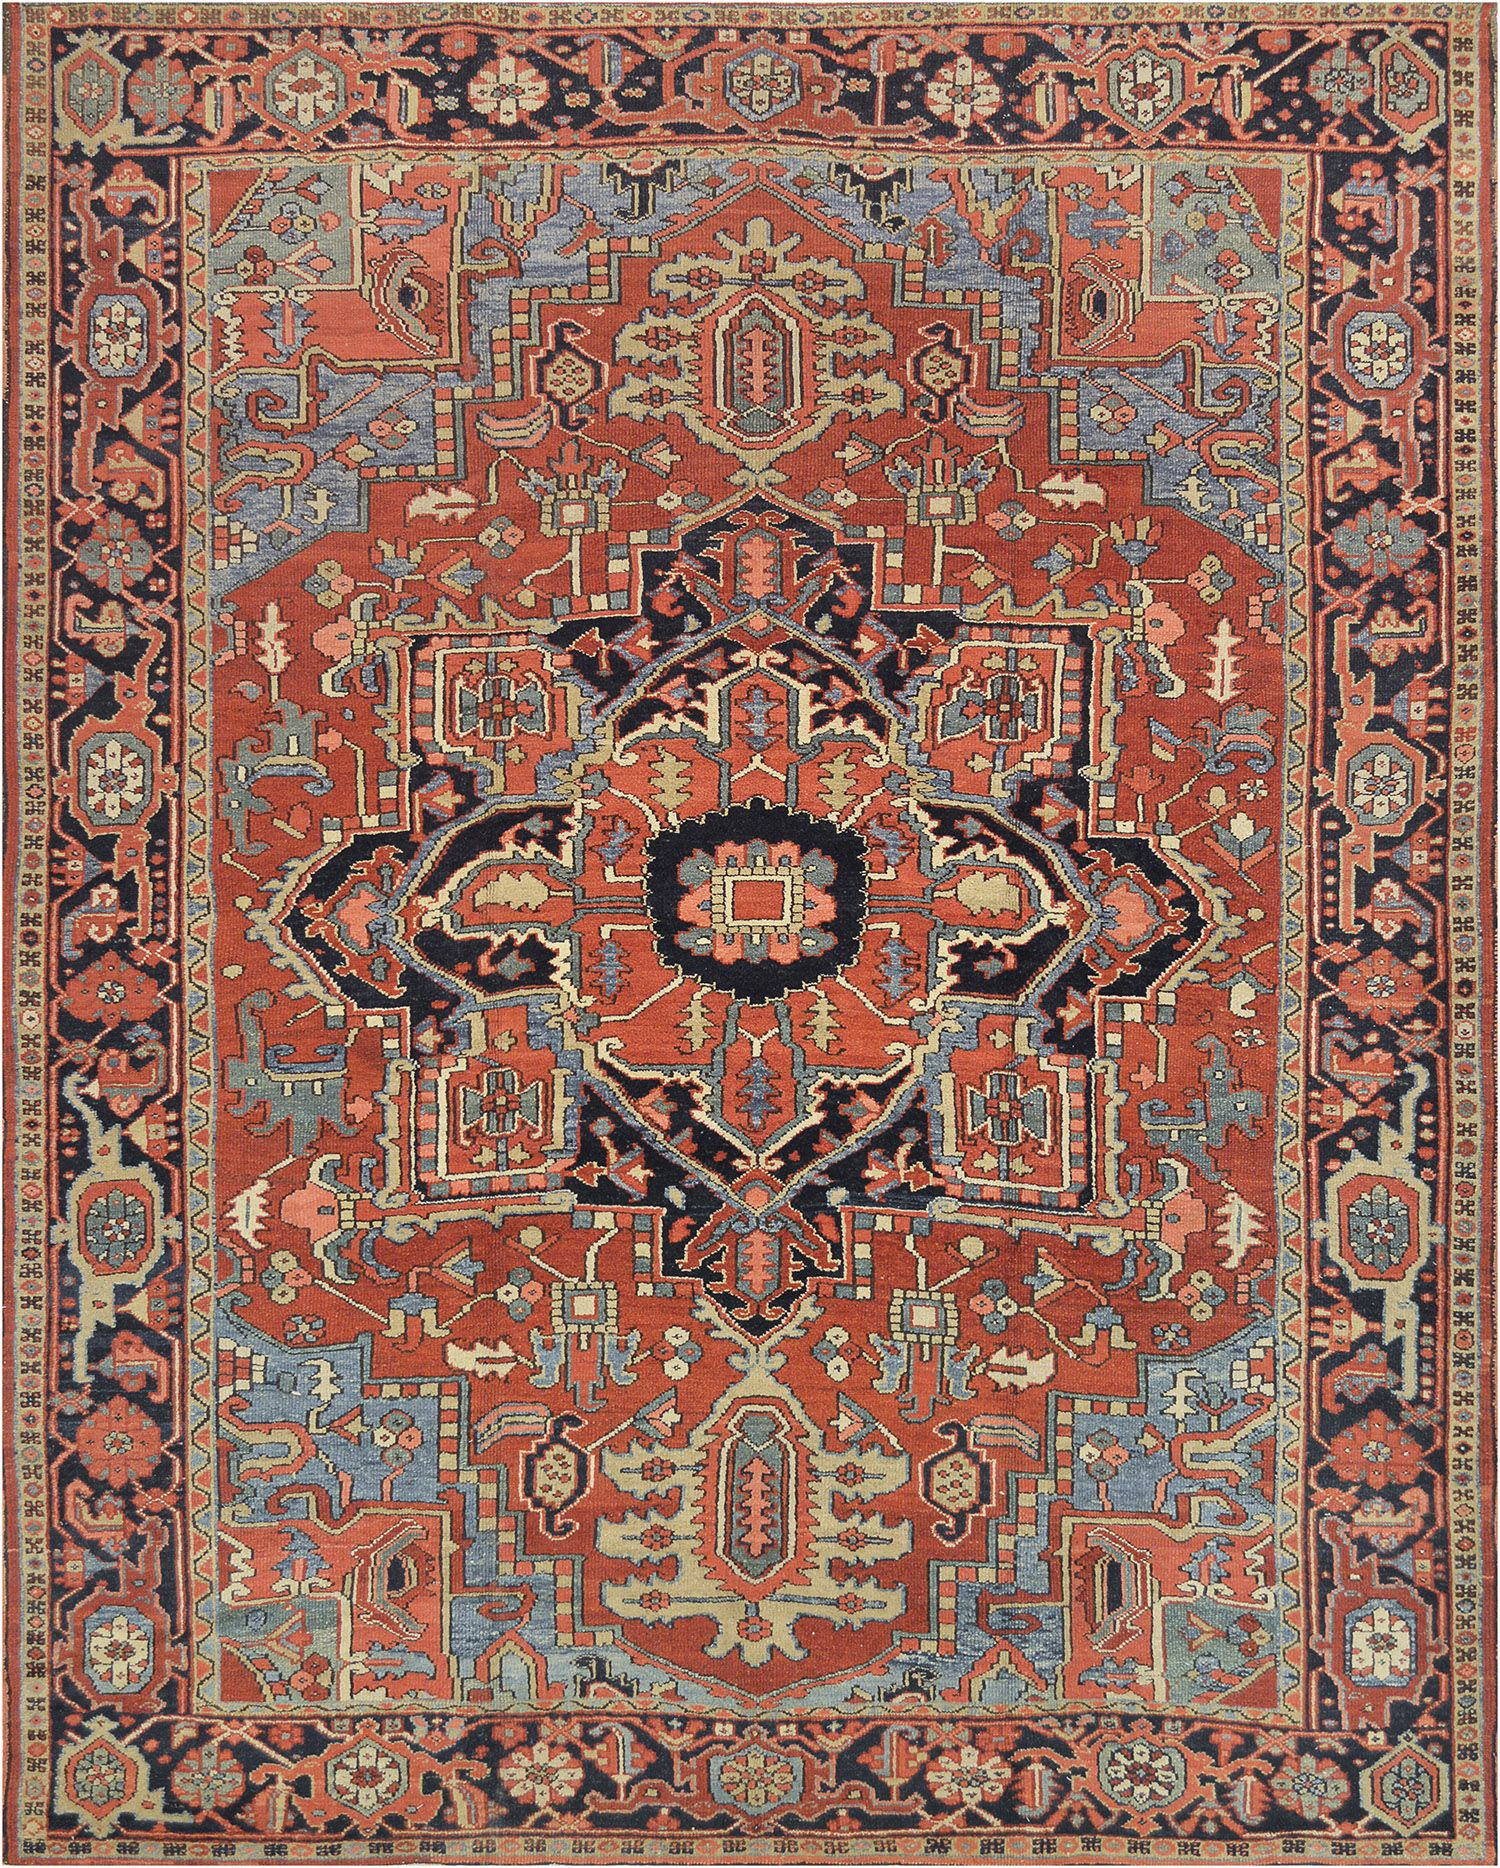 The World 39 S Largest Collection Of Luxury Antique Rugs Vintage Reproduction Rugs And Tapestries The World S Fine Rugs Persian Rugs For Sale Antique Rugs